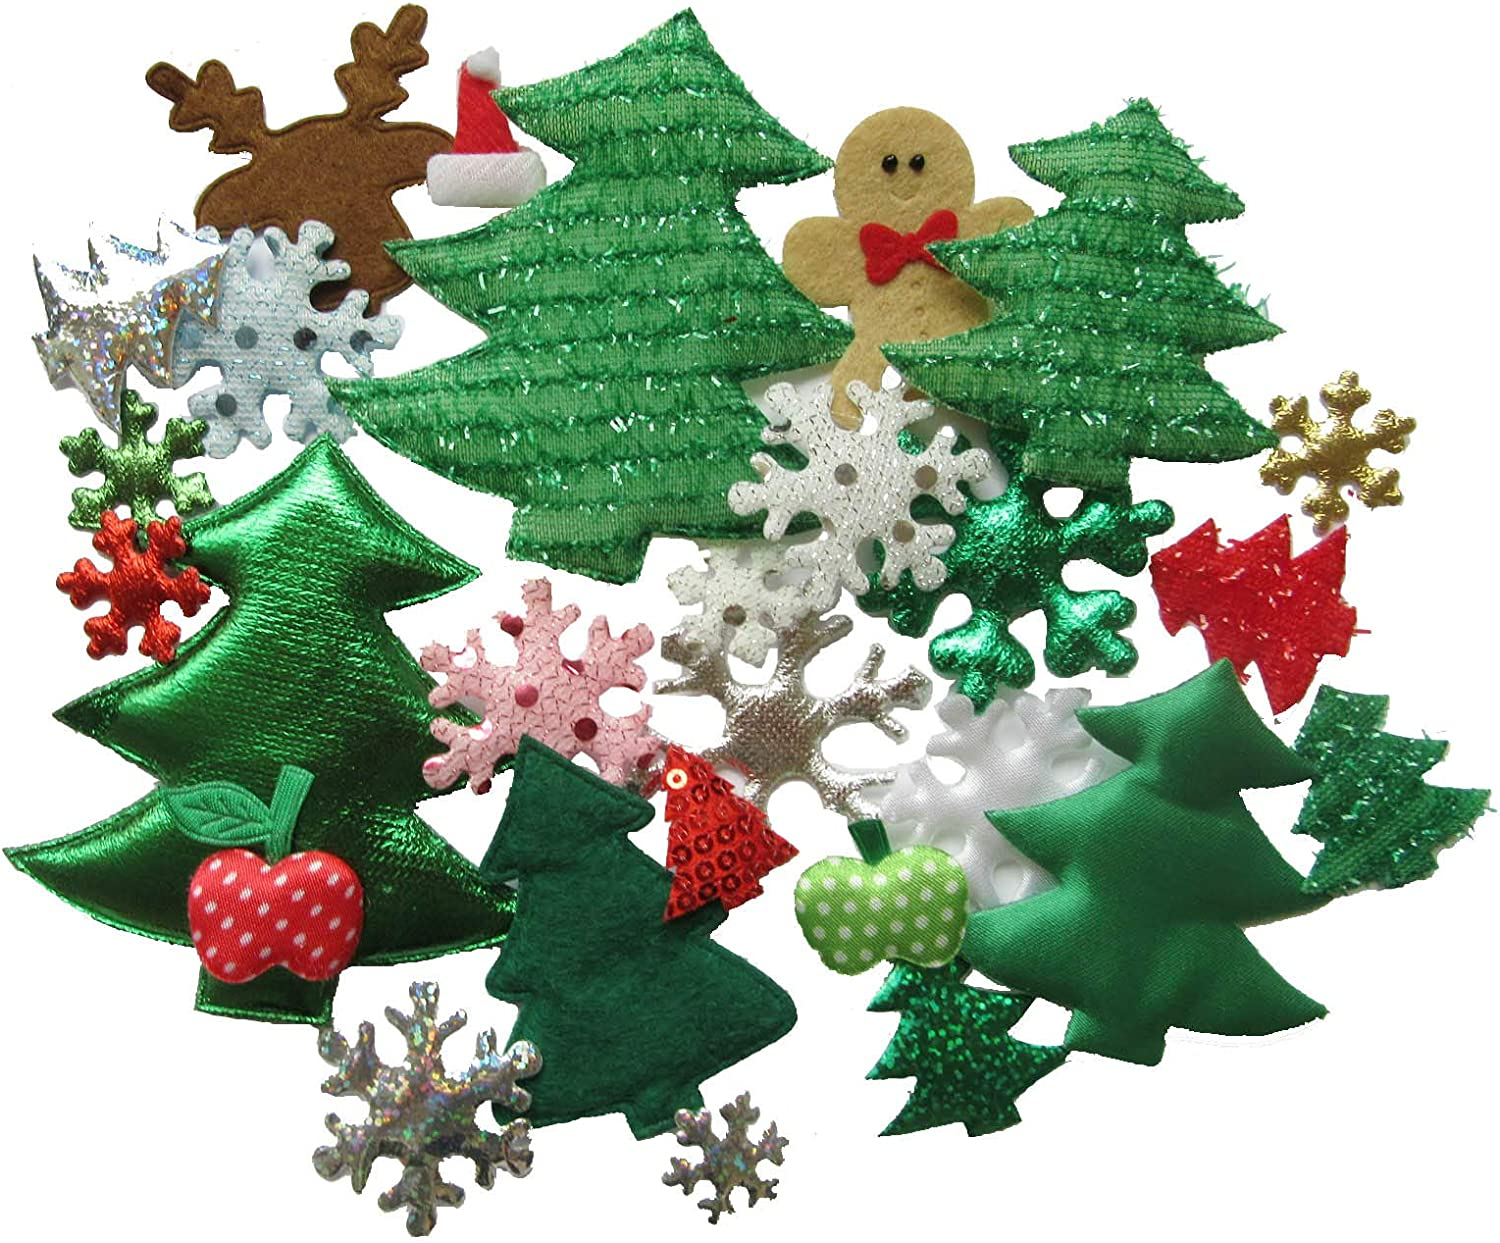 YYCRAFT Assorted 50pcs Christmas Padded Applique Patches for Sewing,Christmas Tree Snowflake Snowman Mix Appliques for Craft Embellishment and Christmas Party Decoration